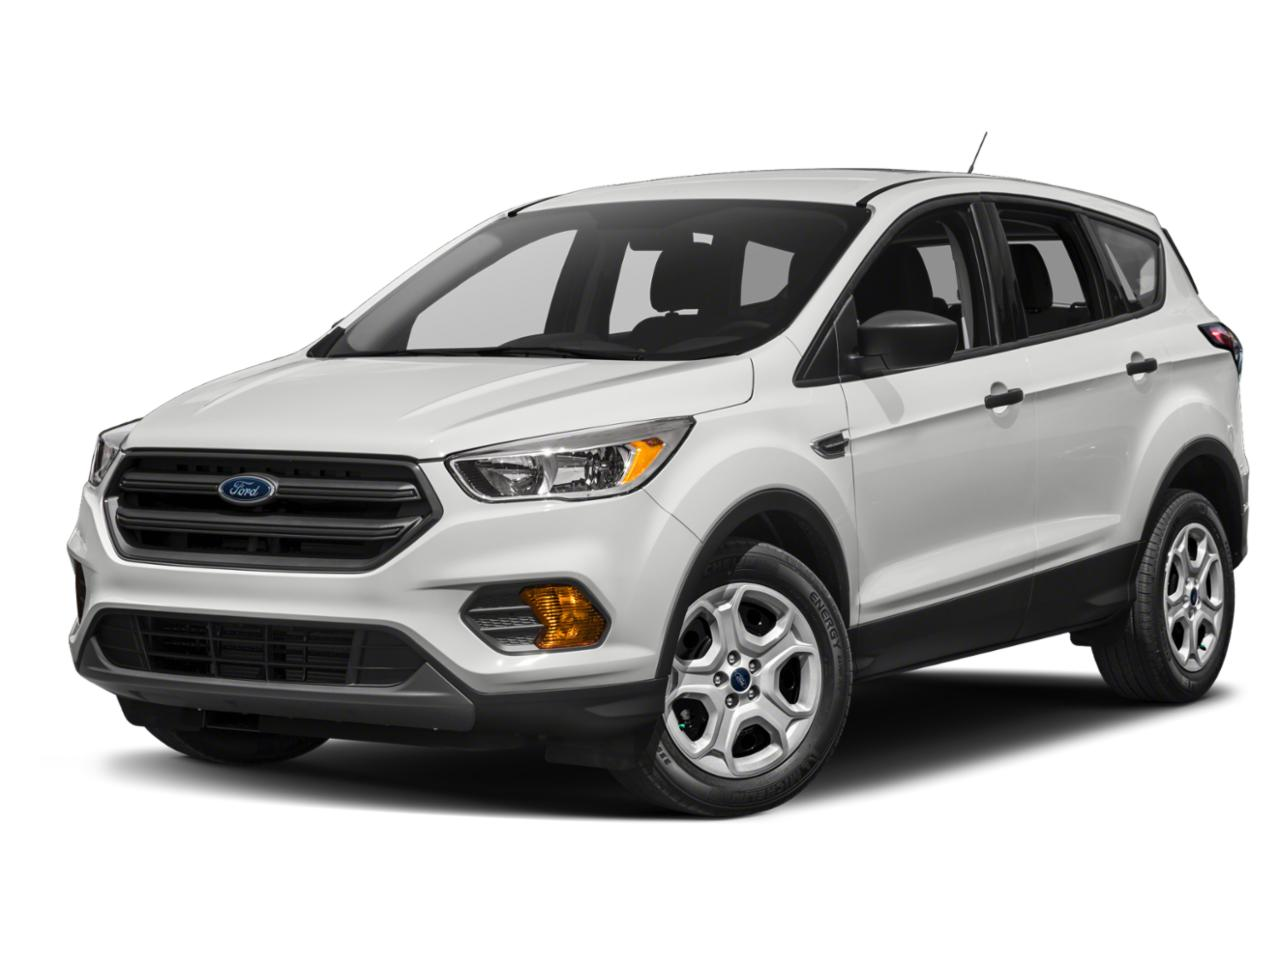 2019 Ford Escape Vehicle Photo in Joliet, IL 60435